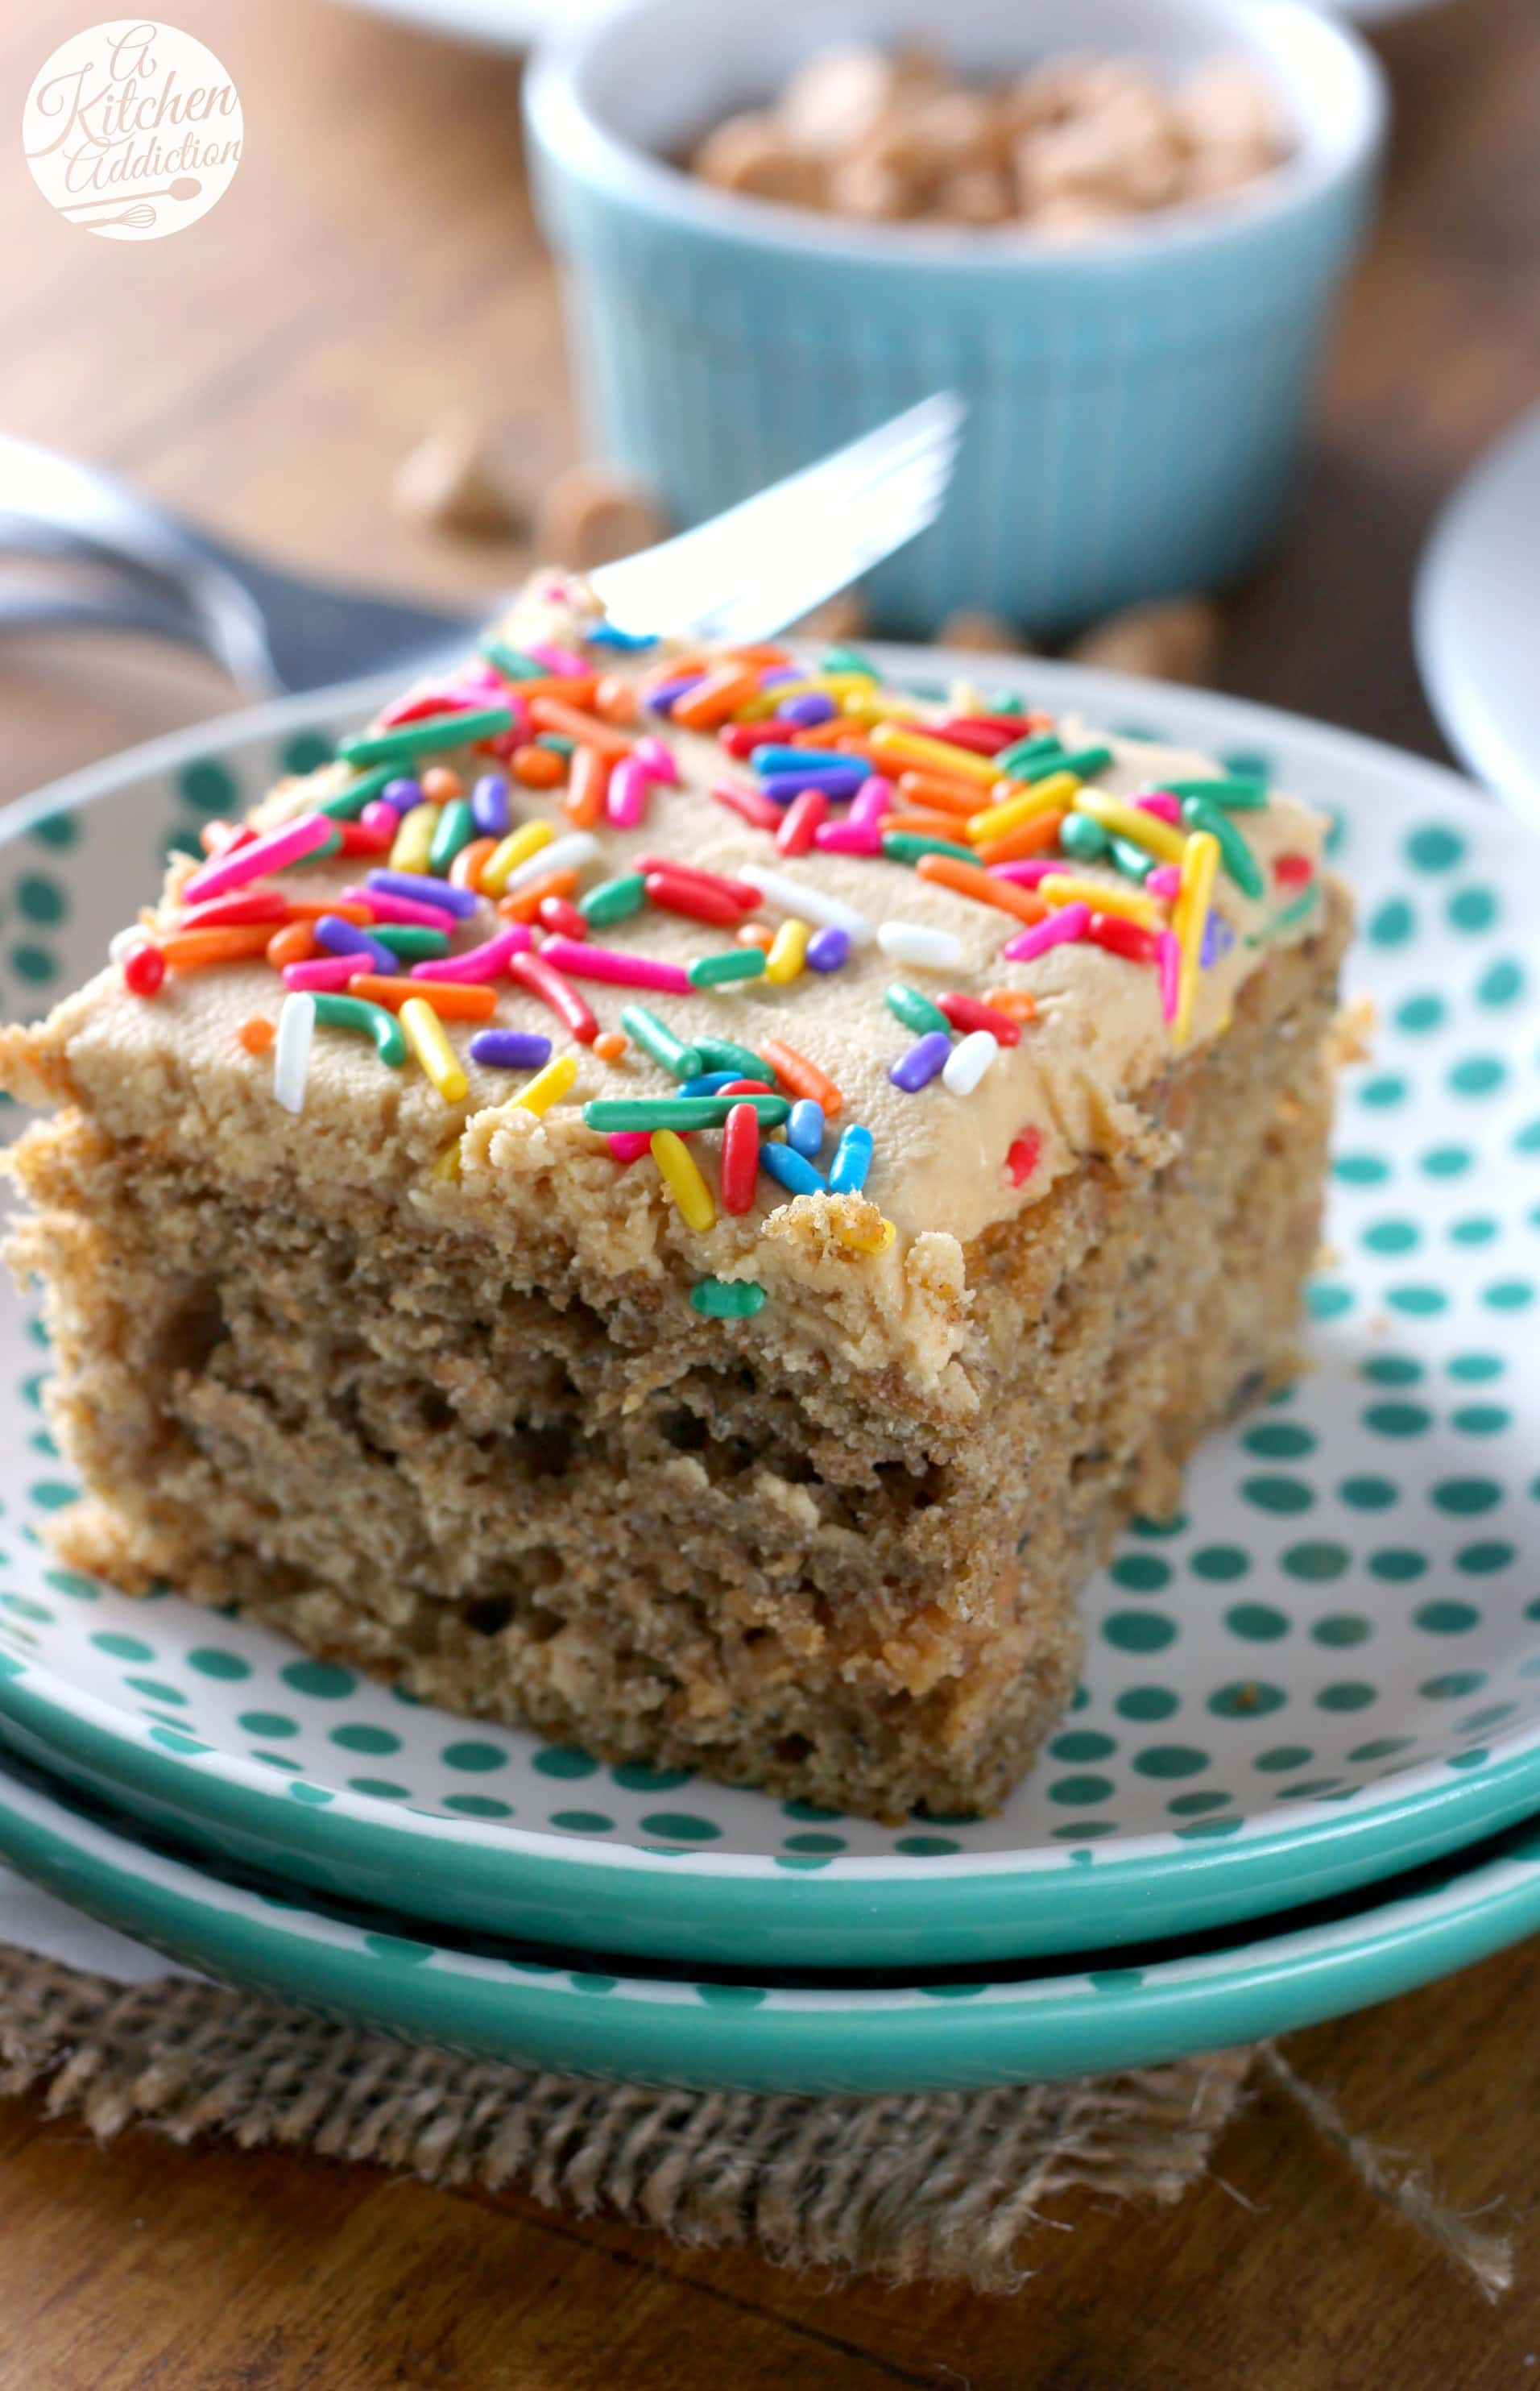 Banana Snack Cake with Peanut Butter Frosting Recipe from A Kitchen Addiction